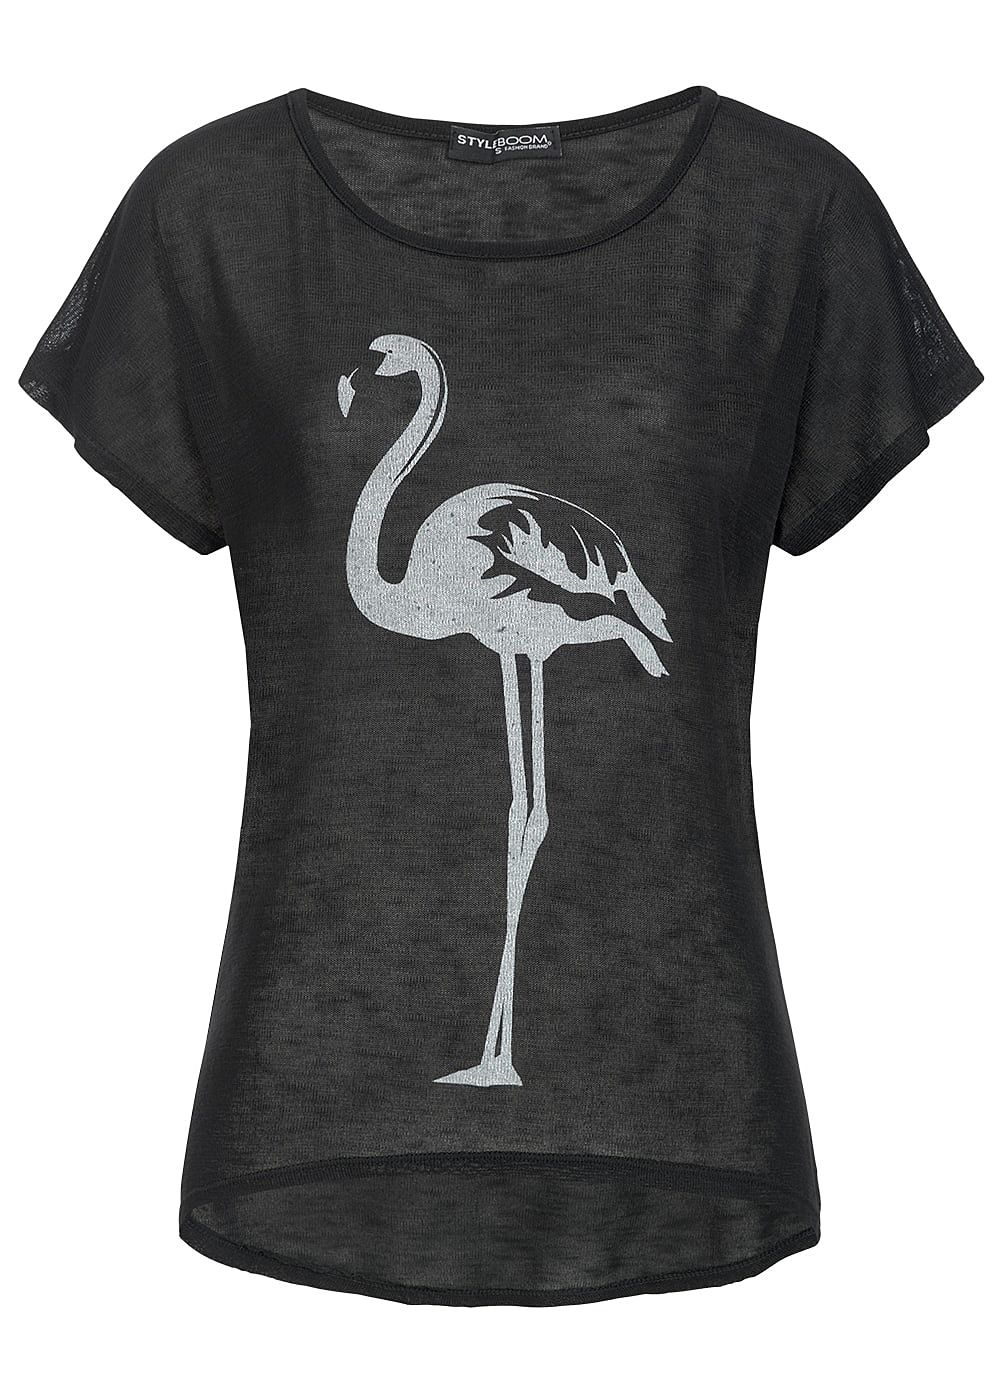 styleboom fashion damen t shirt flamingo print schwarz weiss 77onlineshop. Black Bedroom Furniture Sets. Home Design Ideas